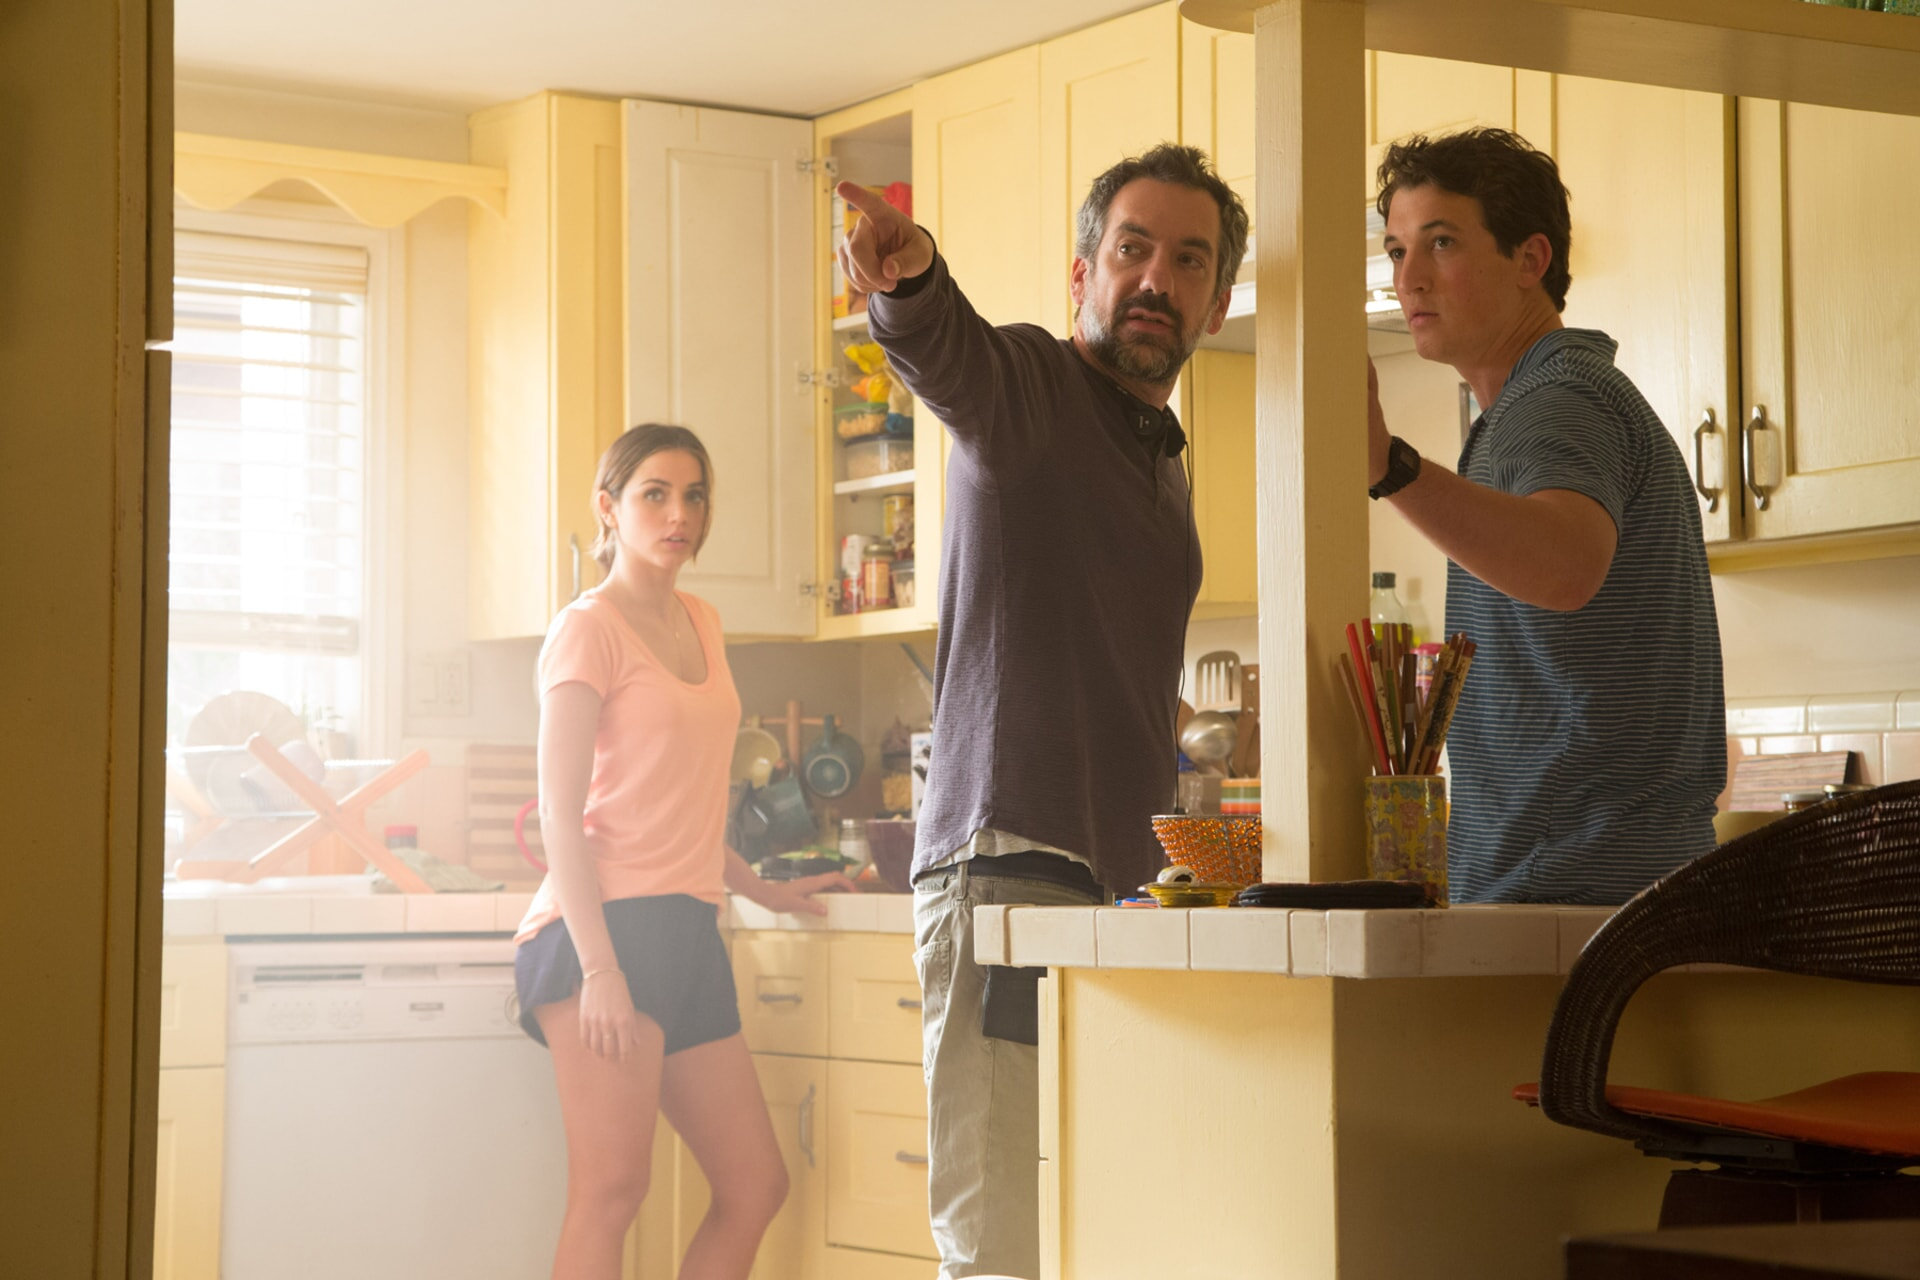 """ANA DE ARMAS, director/writer/producer TODD PHILLIPS and MILES TELLER on the set of Warner Bros. Pictures comedic drama (based on true events) """"WAR DOGS,"""" a Warner Bros. Pictures release."""